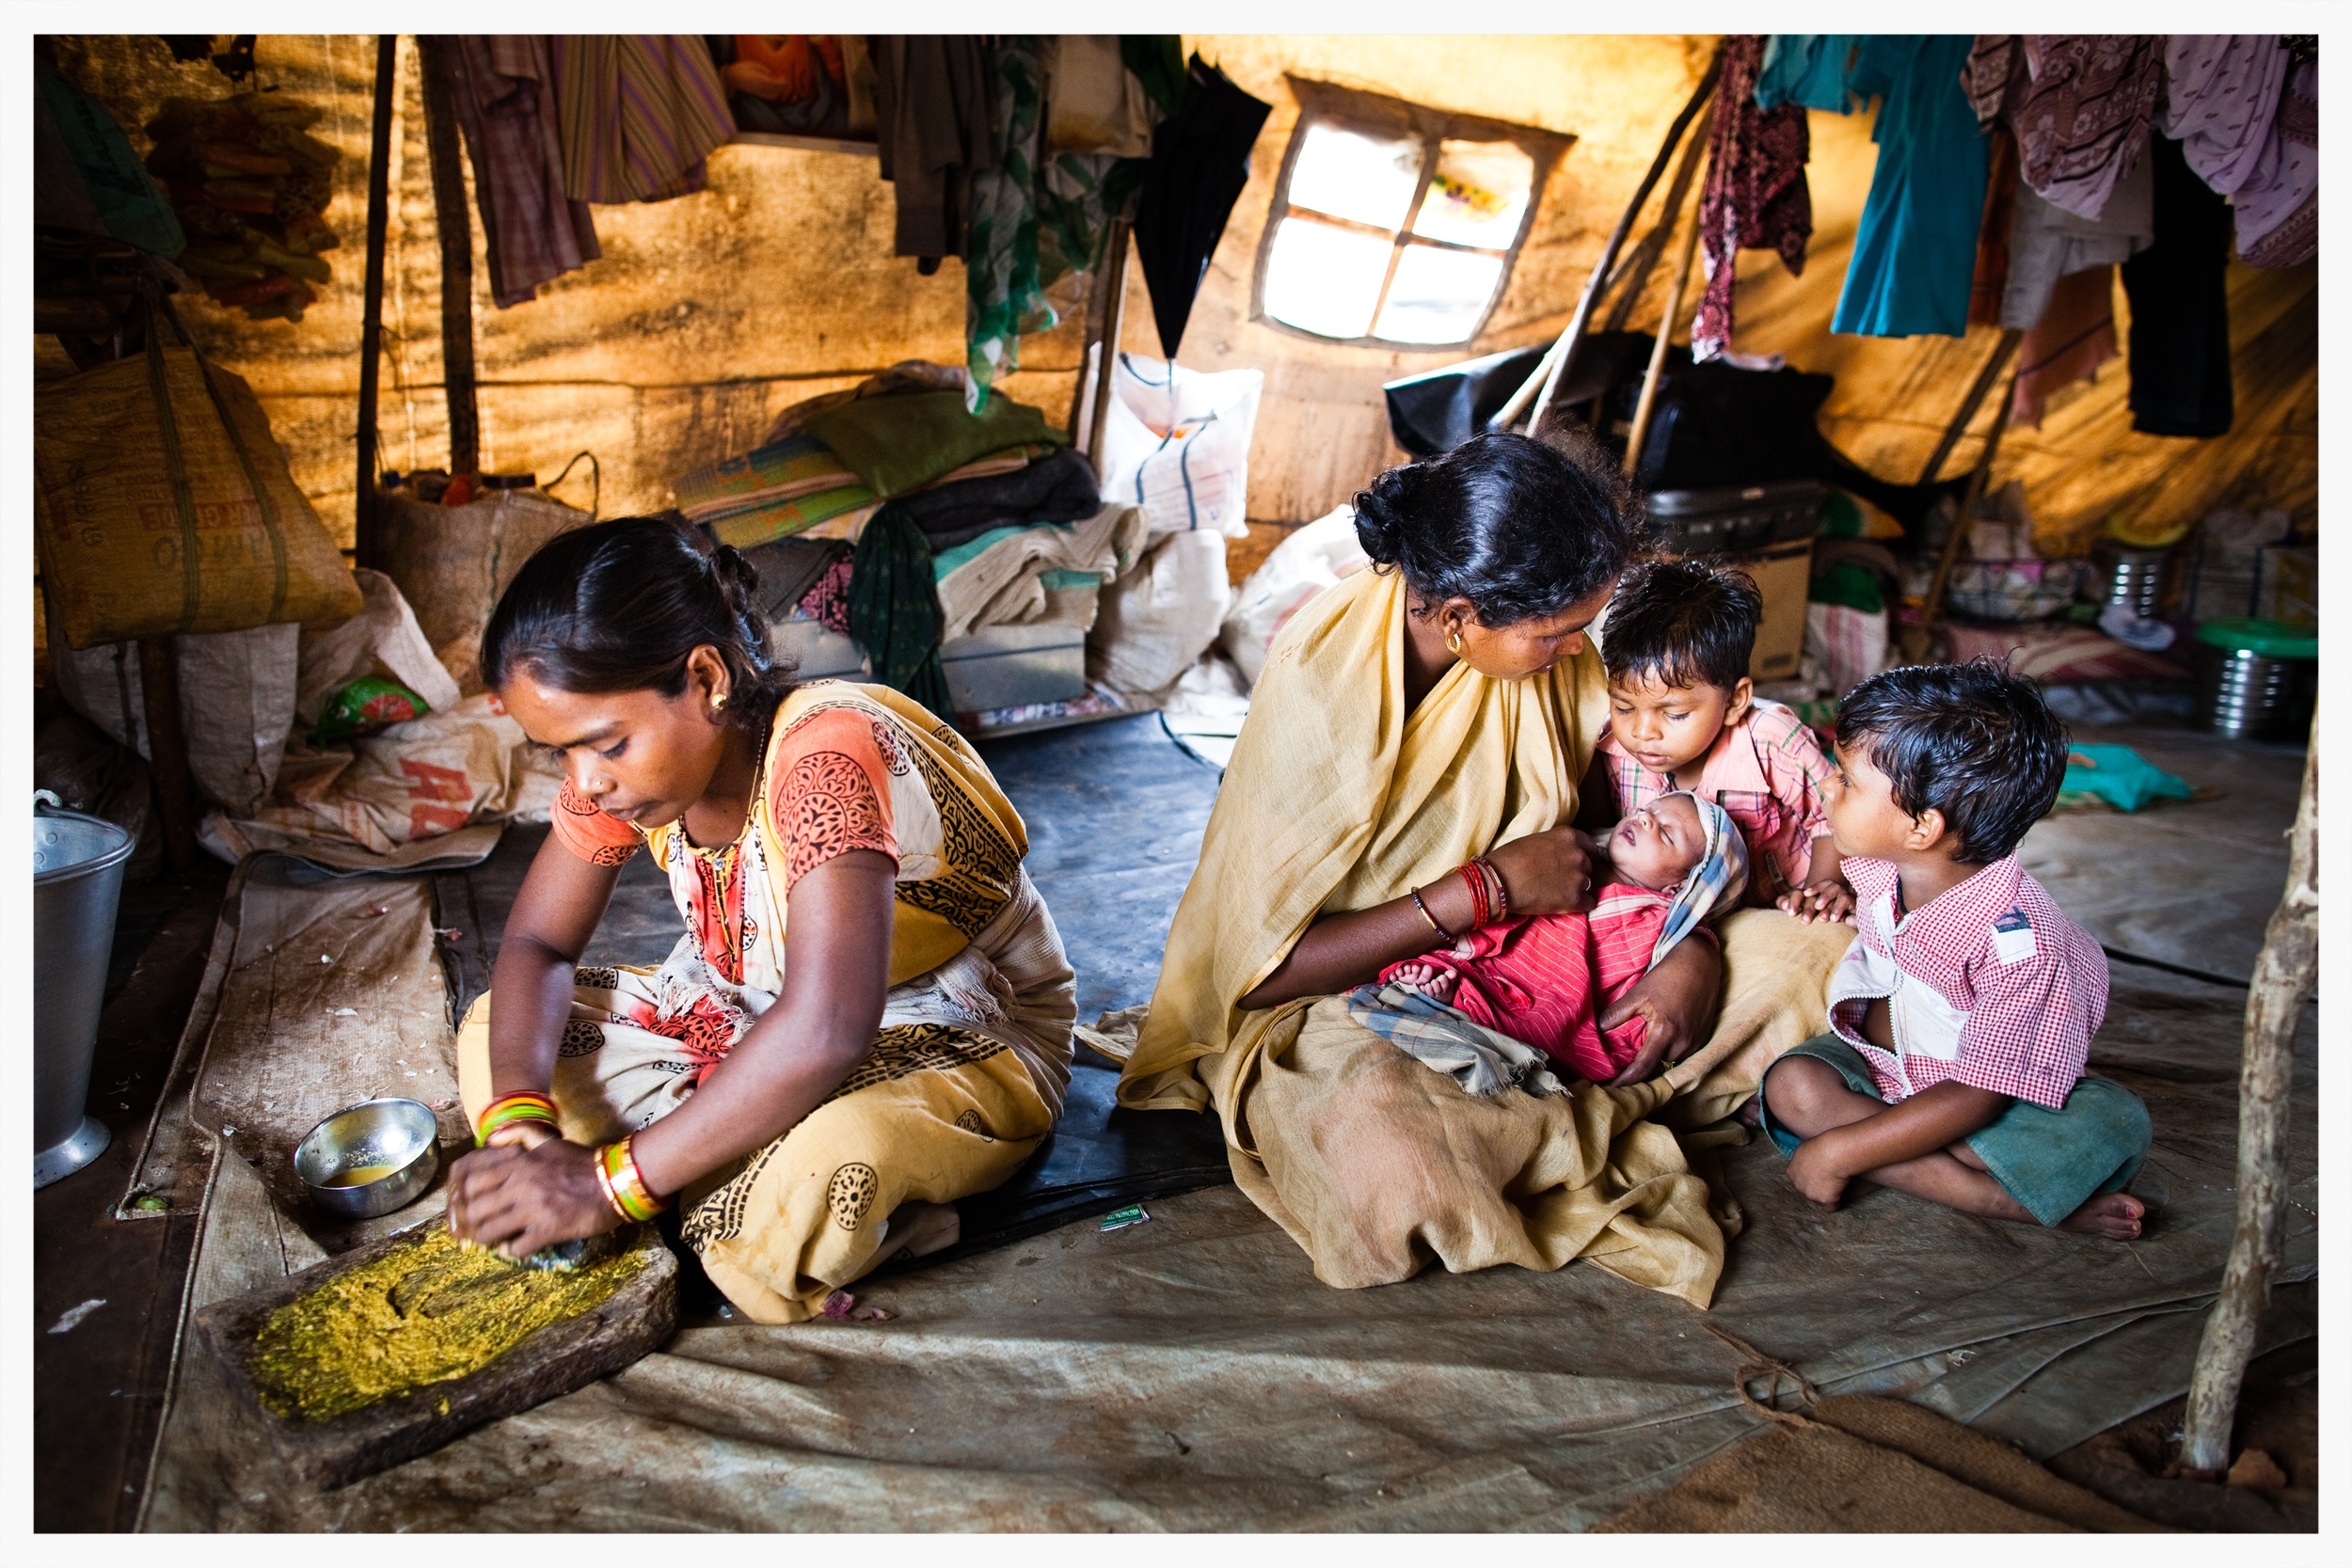 Displaced Indian Dalits, Being Untouchable. Photo: © Marcus Perkins